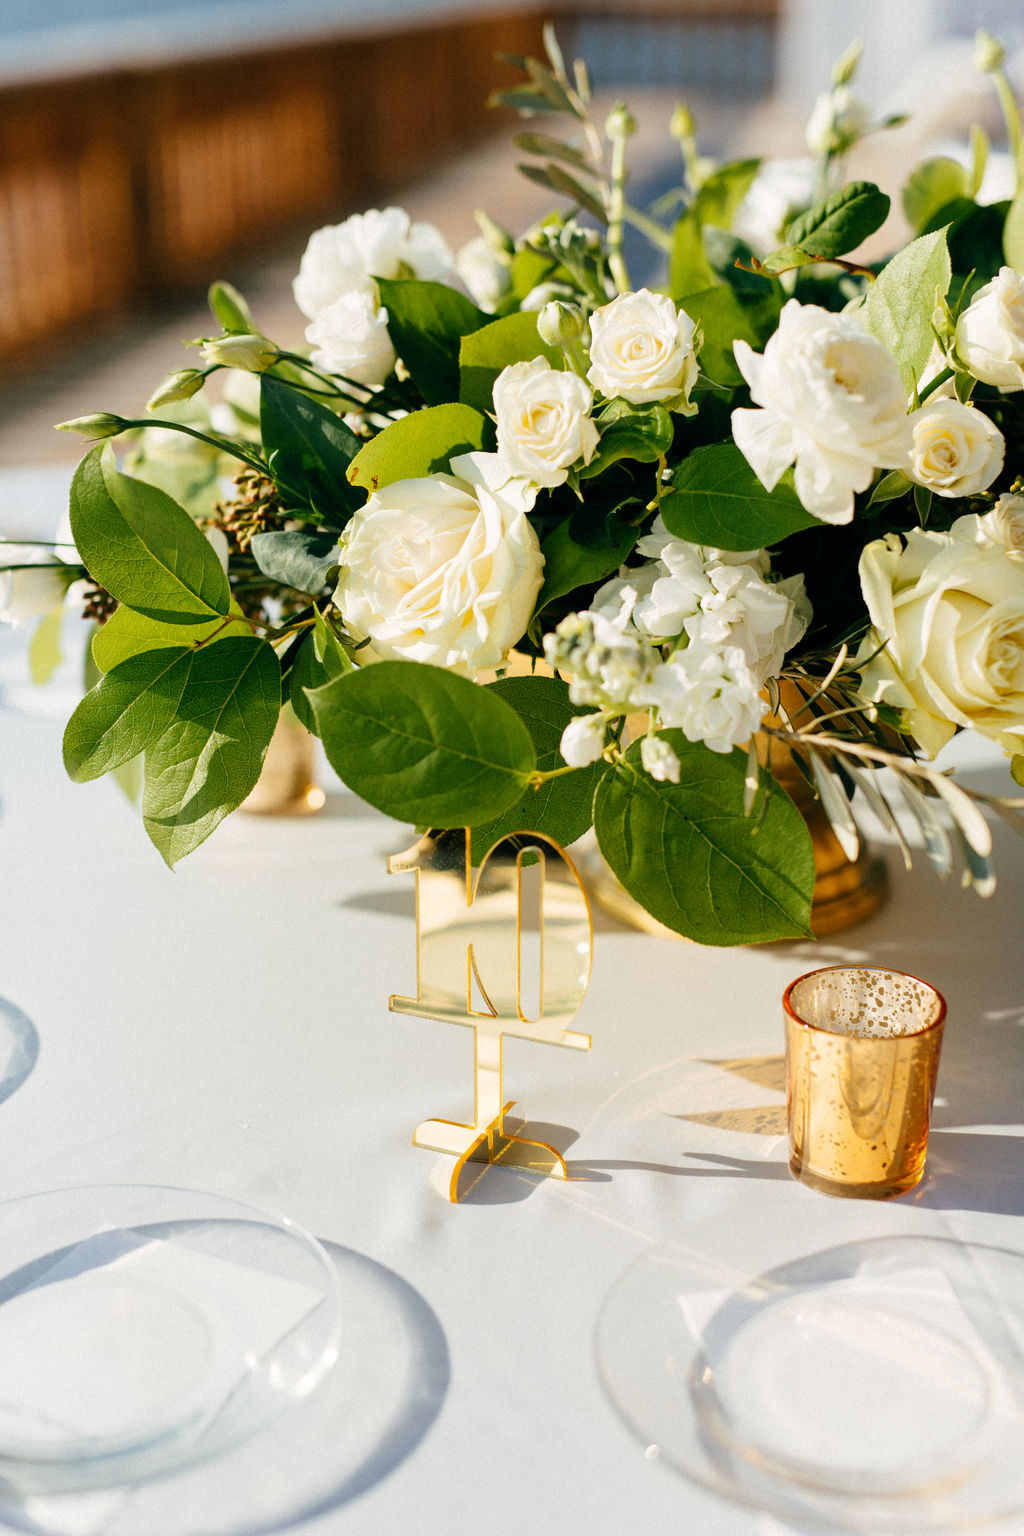 Classic Elegant Wedding Reception Decor, Low White Roses with Greenery Floral Centerpiece, Acrylic Gold Table Number, Gold Mercury Candle Votive   Tampa Bay Wedding Planner NK Productions